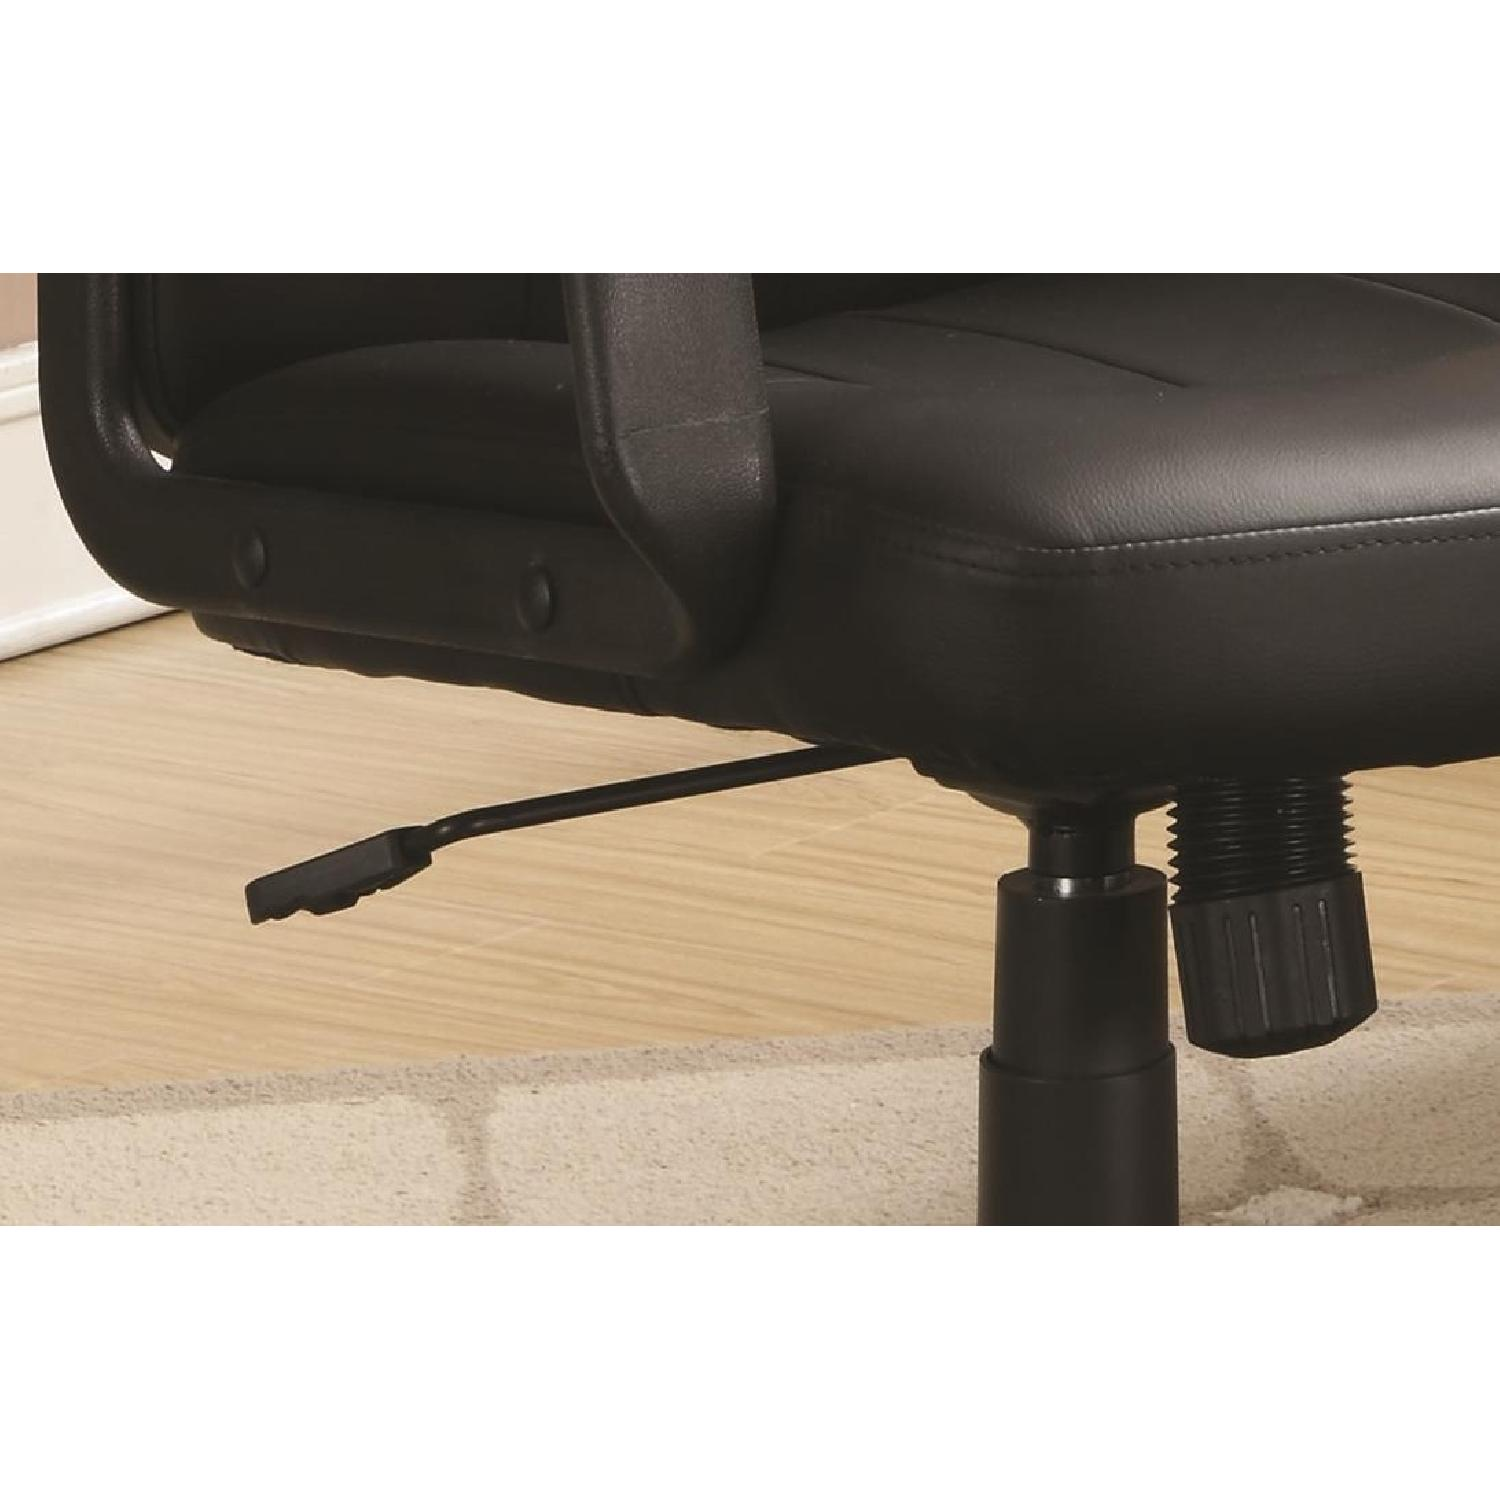 Office Chair in Leather-like Vinyl w/ Arm Rests - image-3